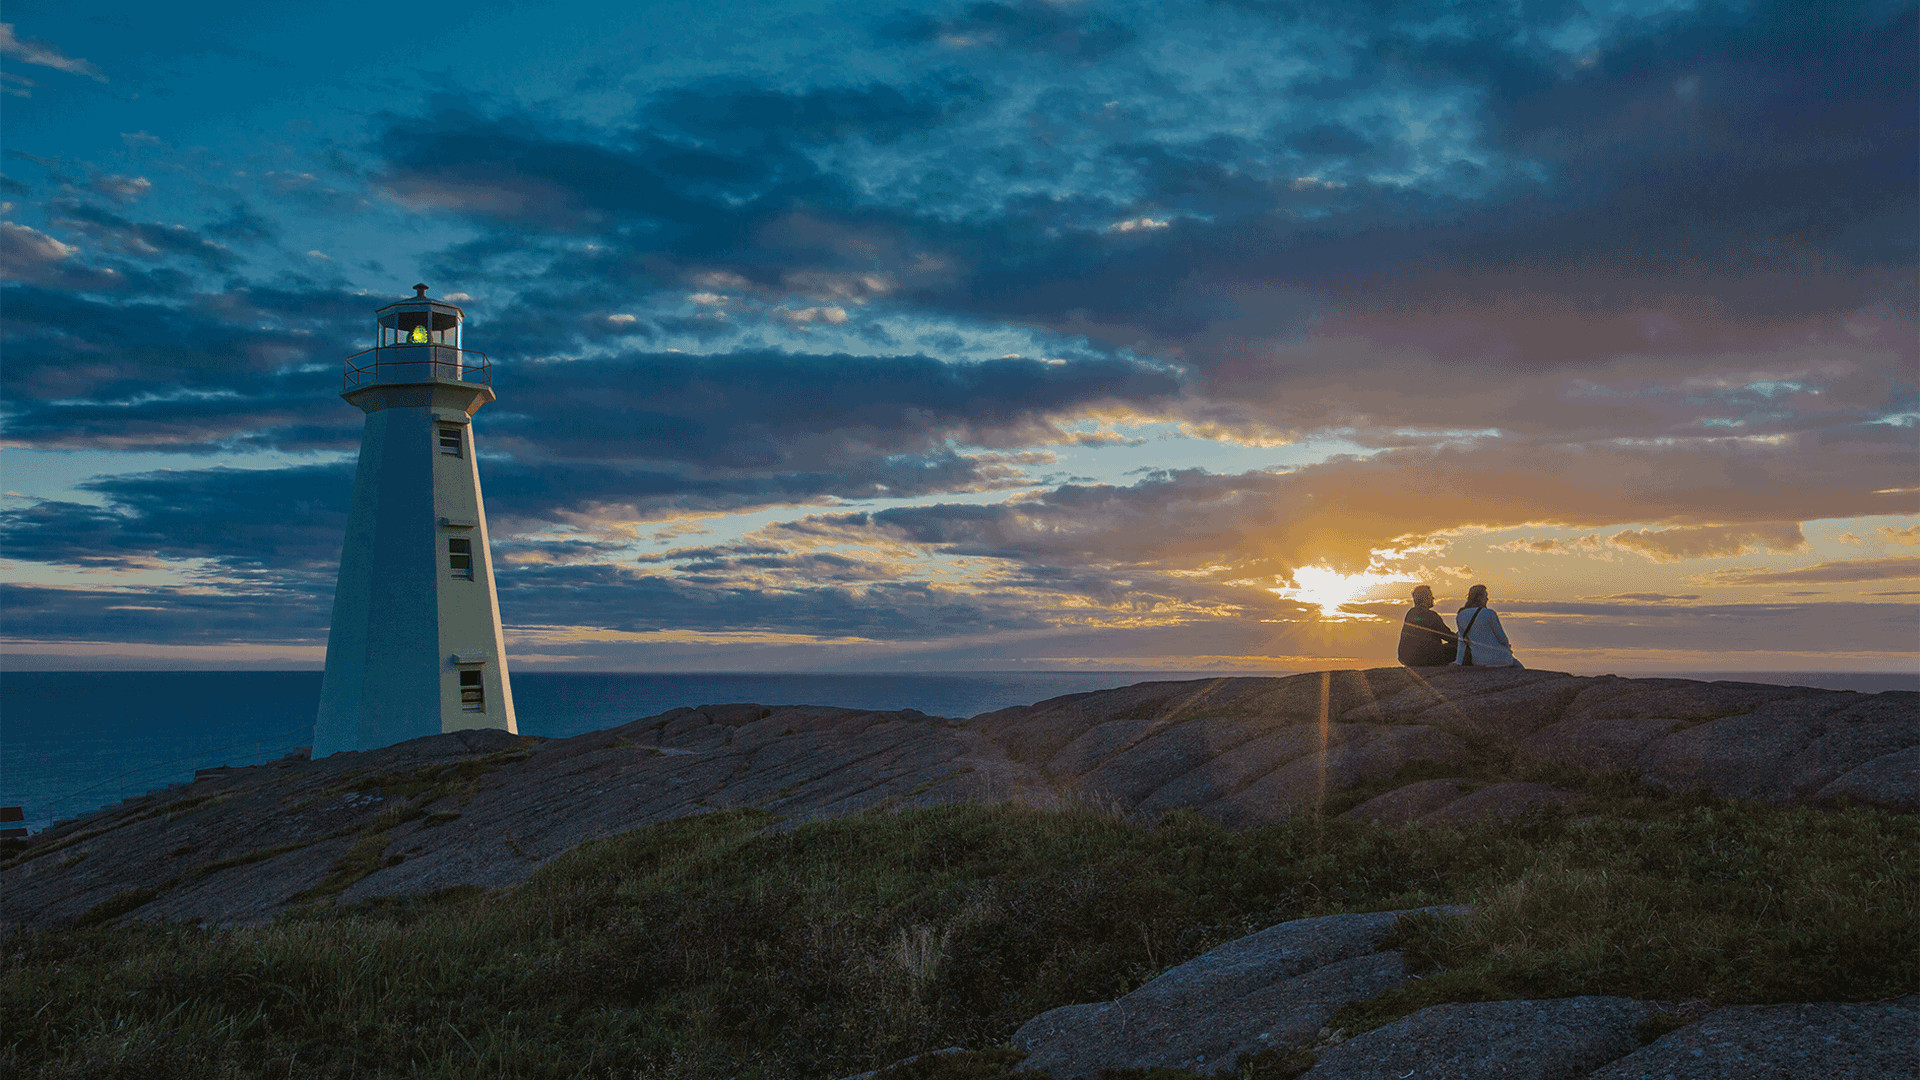 St. John's, Newfoundland and Labrador | Cape Spear